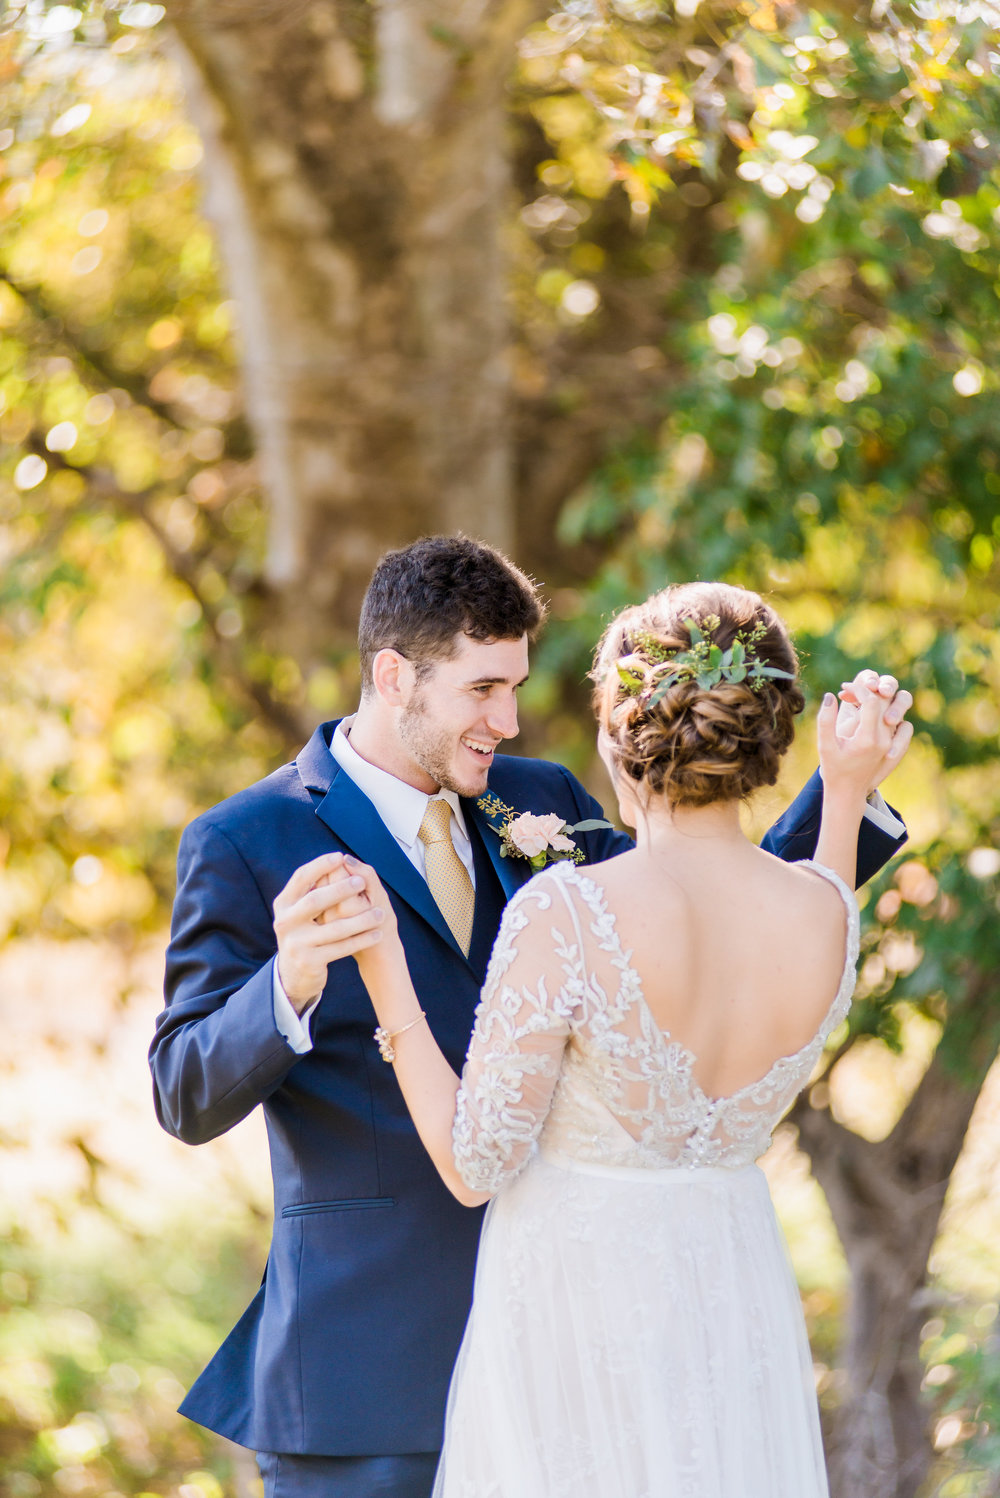 MissouriRusticWedding_StLouisWeddingPhotographer_AliciaDan_CatherineRhodesPhotography-1310-Edit.jpg